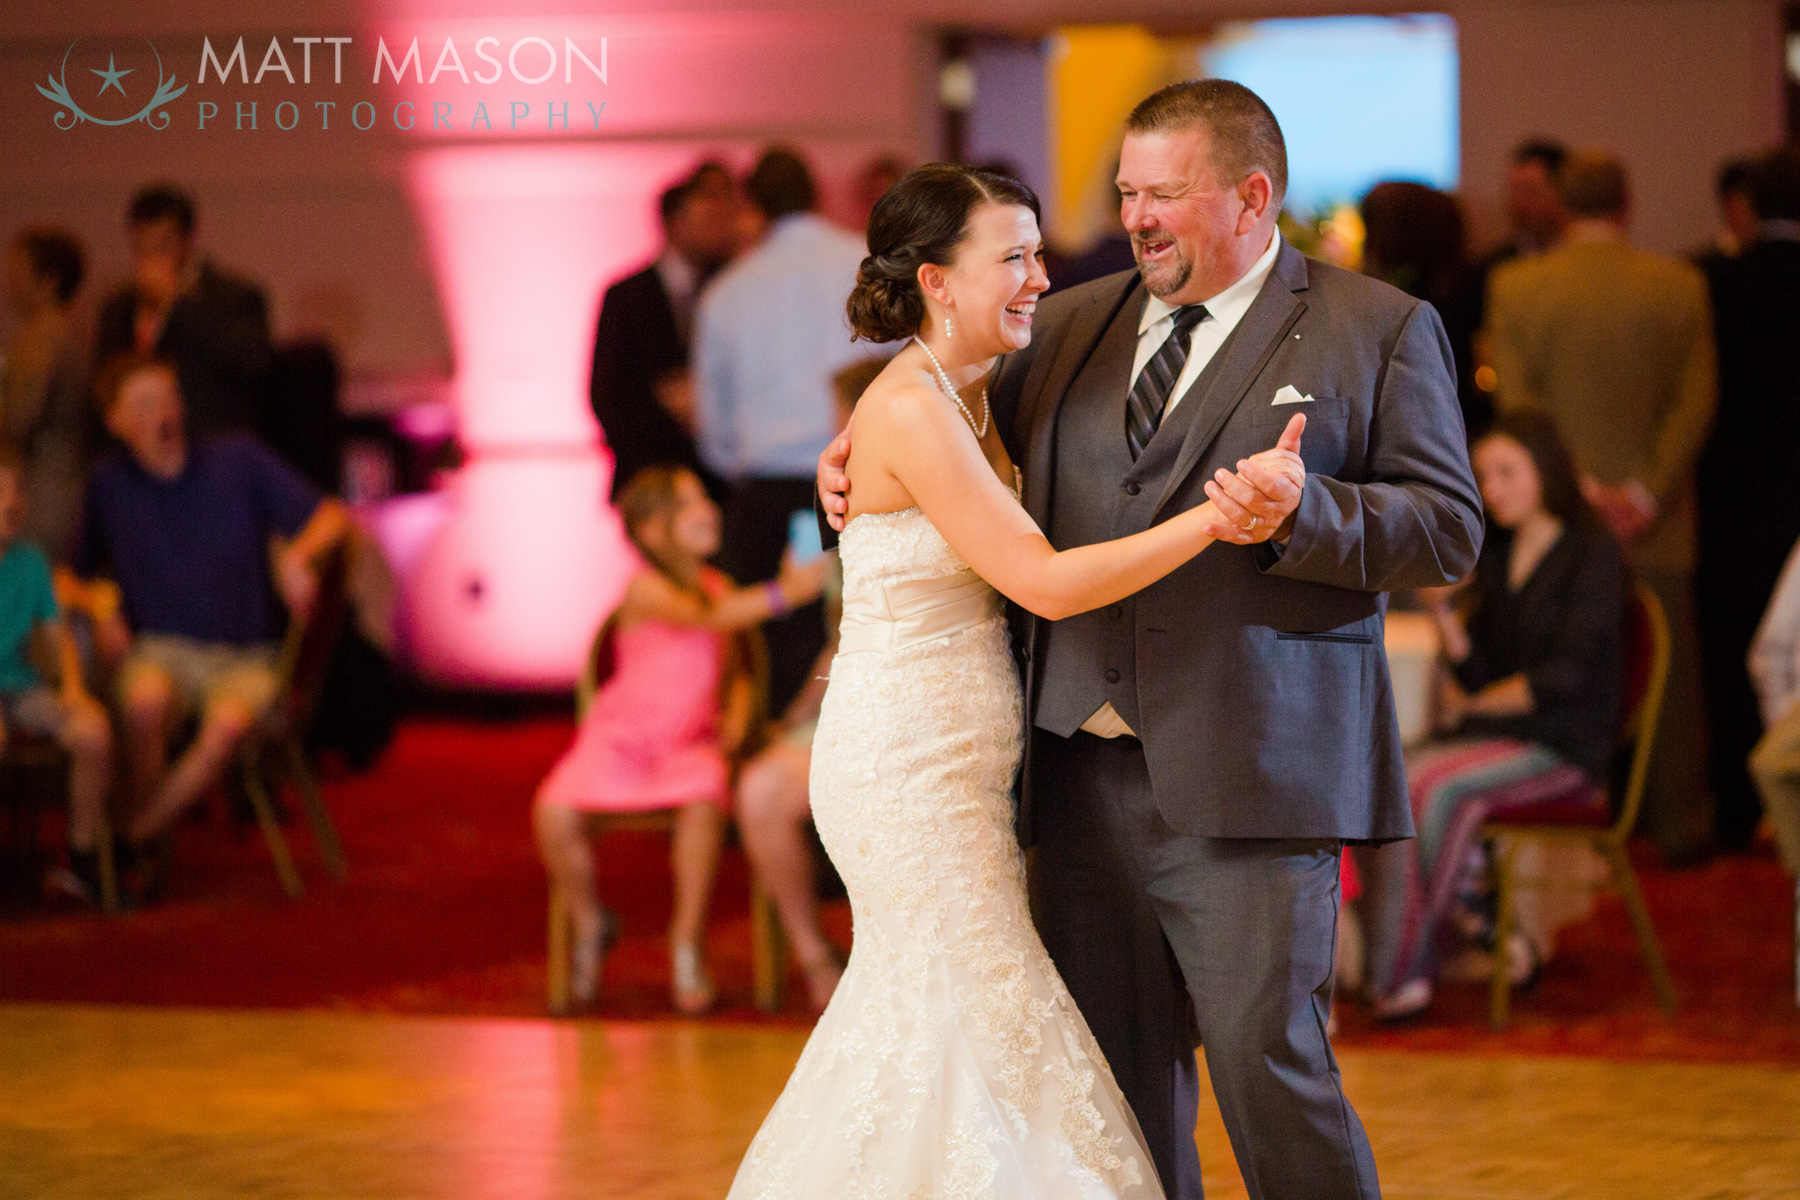 Matt-Mason-Photography-Father-Daughter-MattMasonPhotography-4.jpg